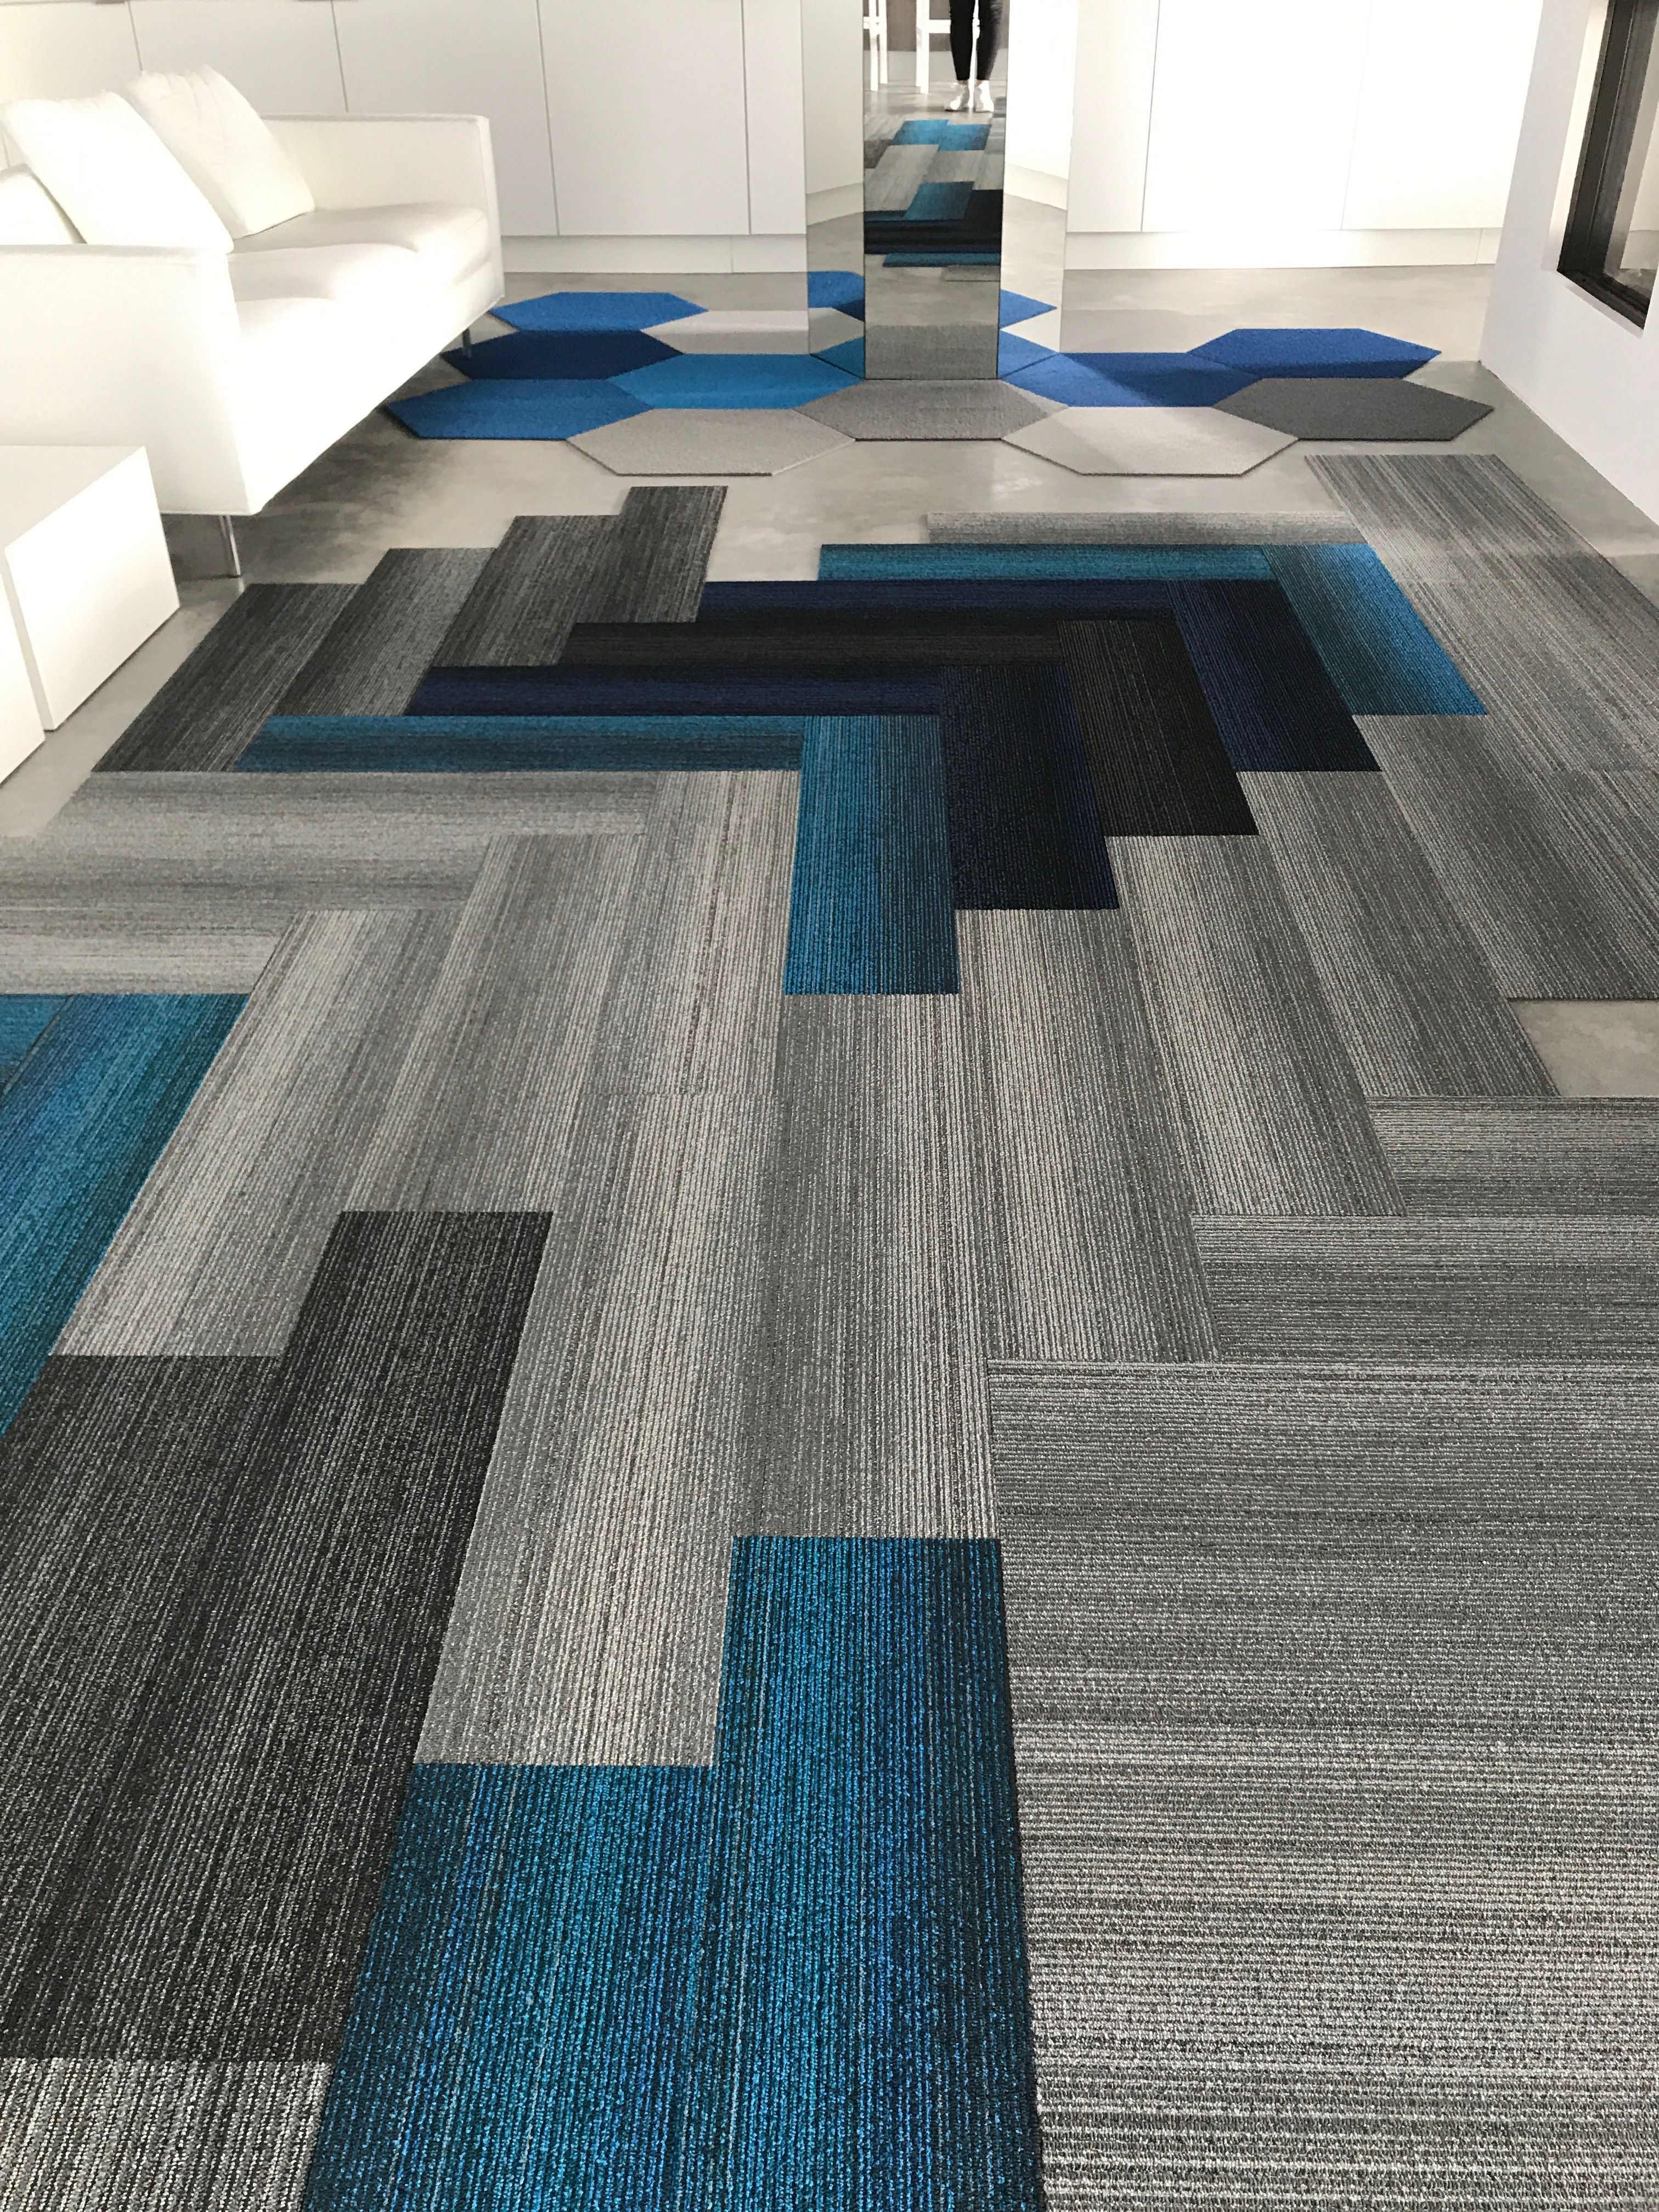 Carpet Design, Architecture Office, Corporate Offices, Commercial Carpet,  Level 5, Fabric Rug, Floor Patterns, Office Spaces, Office Ideas